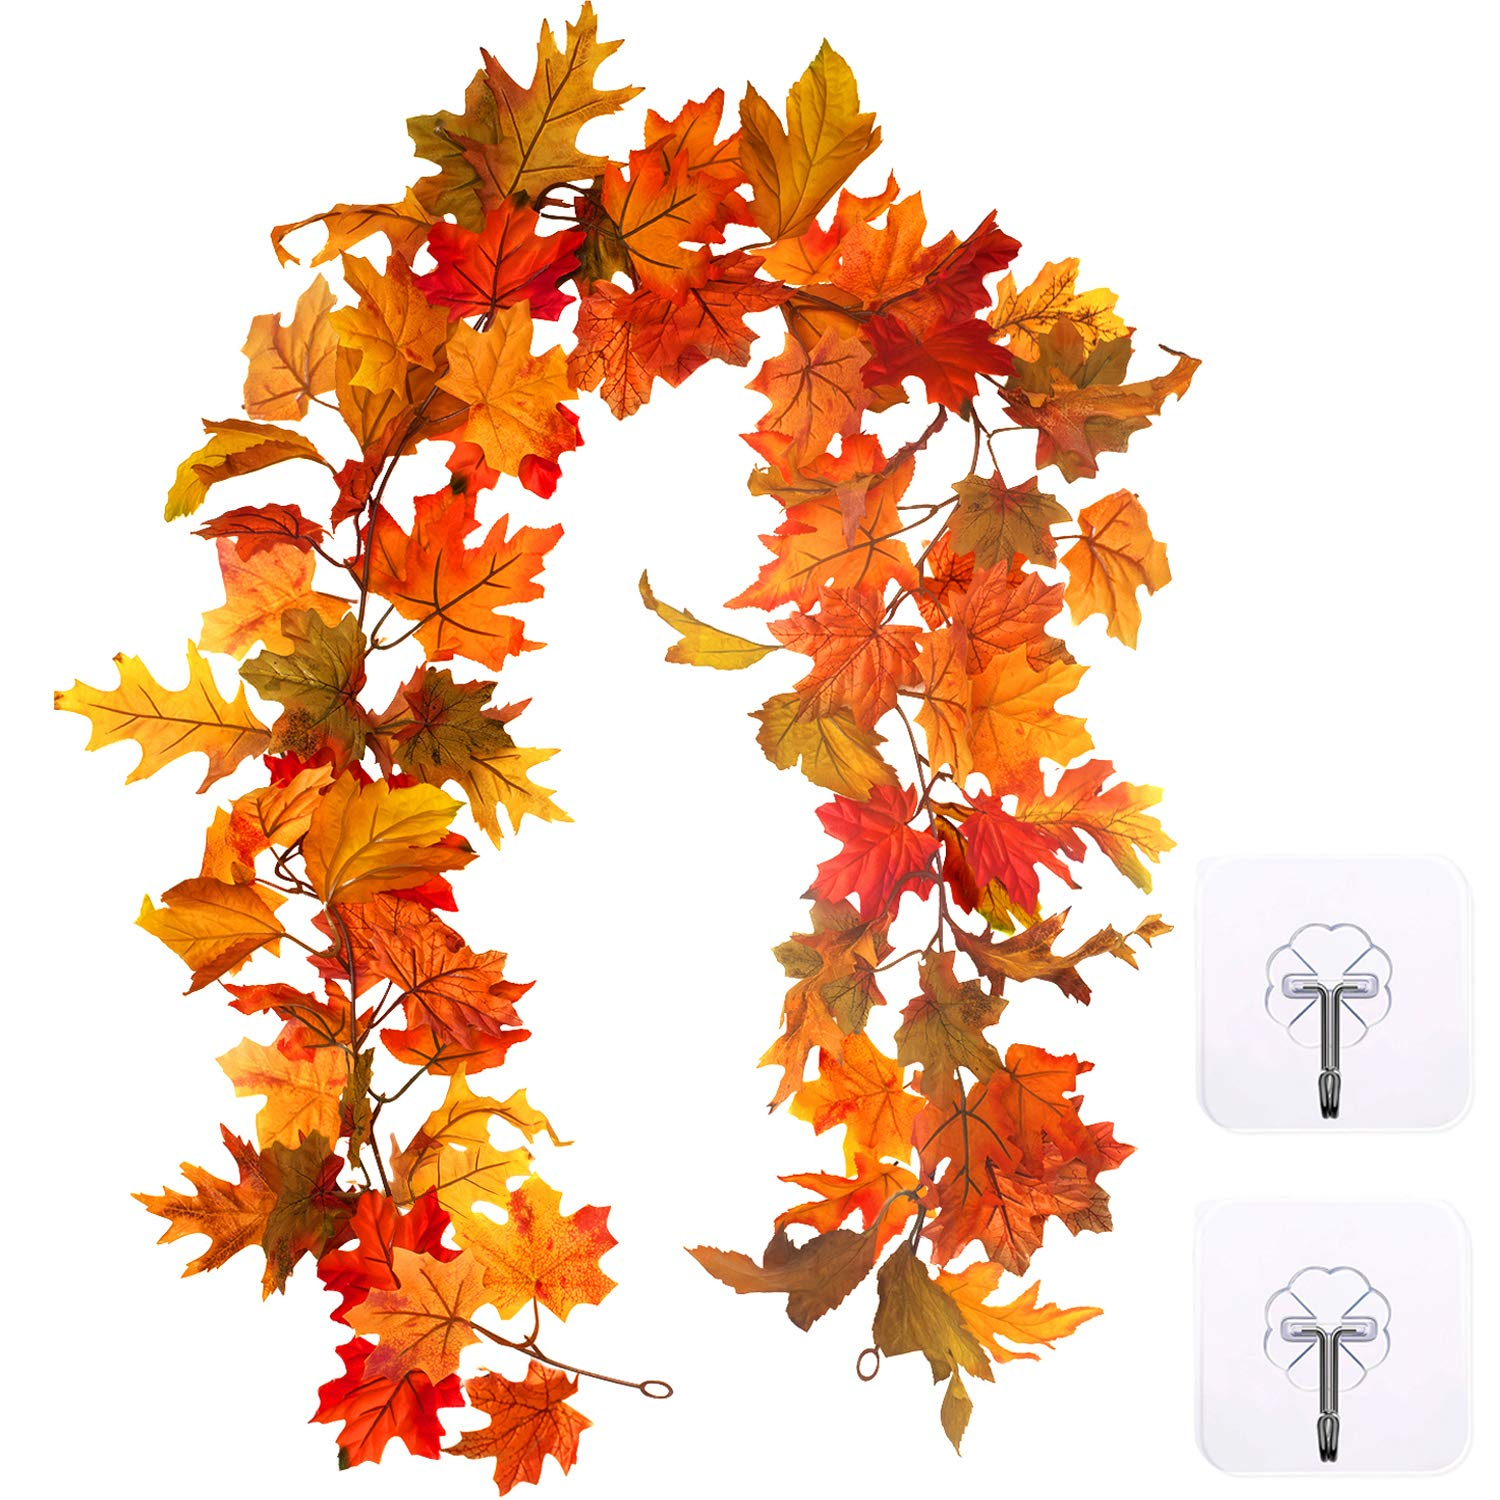 Whaline Artificial Autumn Fall Maple Leaves Garland Hanging Plant for Home Garden Wall Doorway Backdrop Fireplace Decoration Wedding Party Decor (Light)